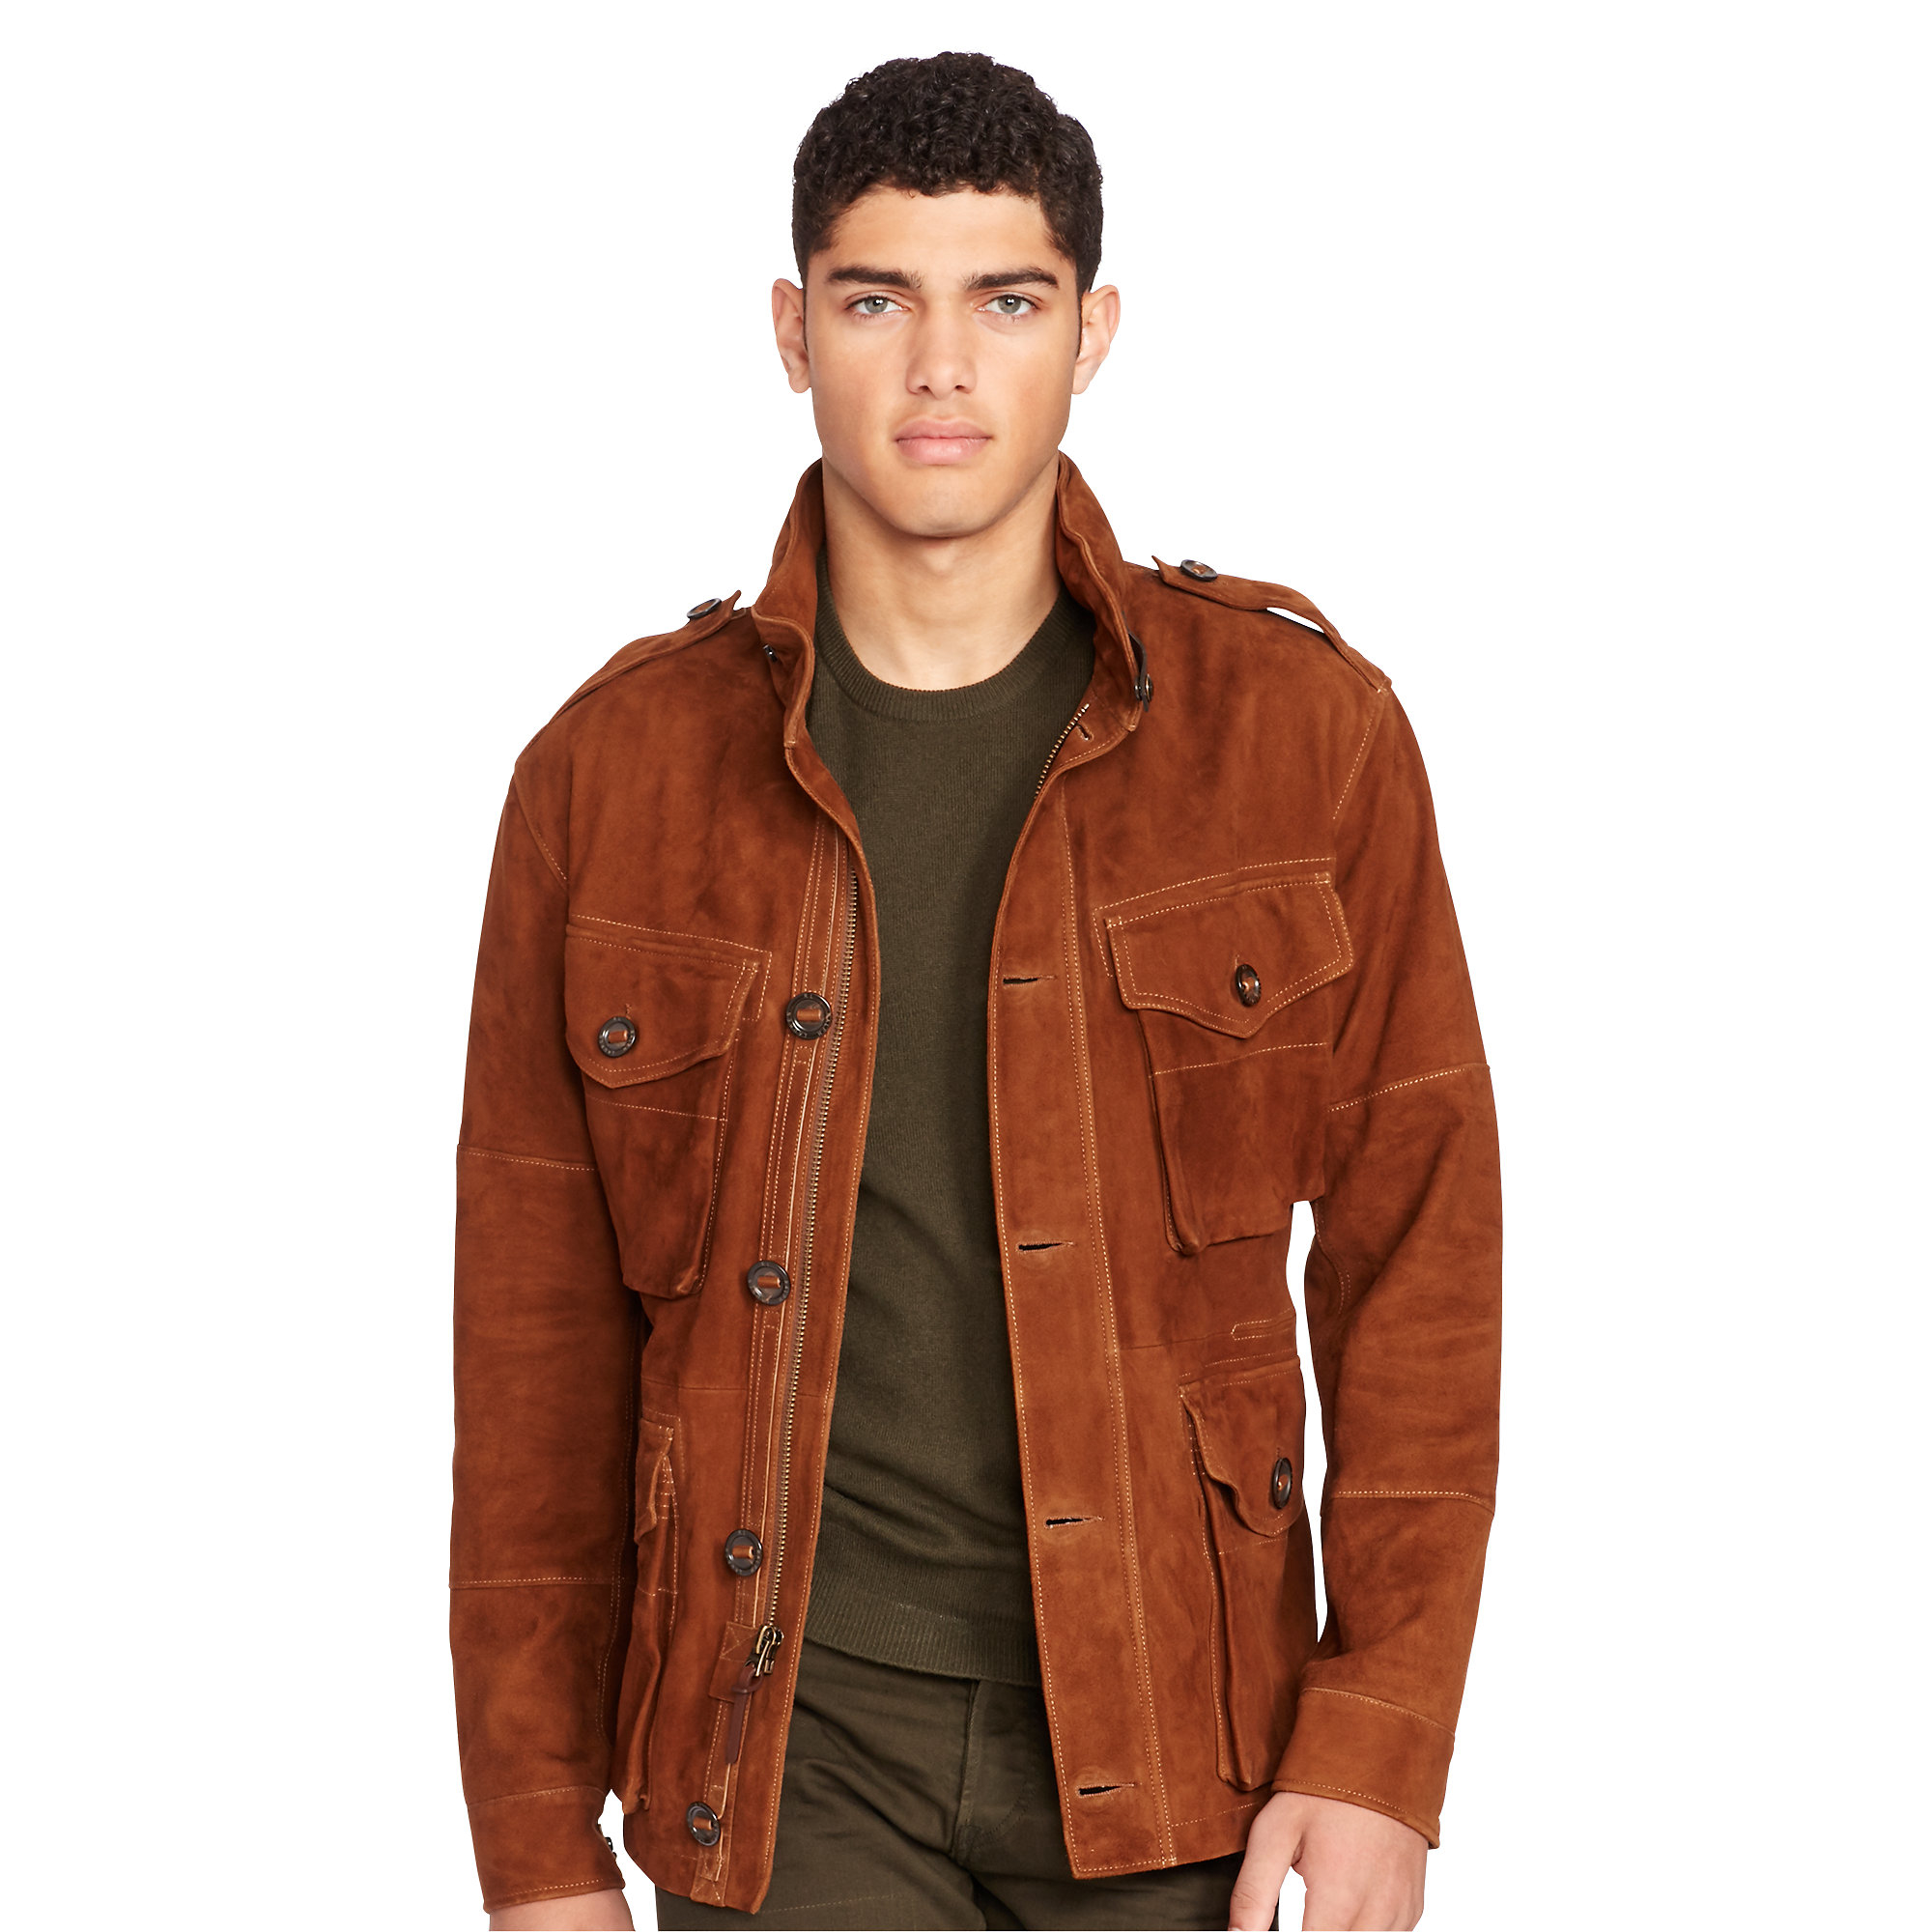 lyst polo ralph lauren suede combat jacket in brown for men. Black Bedroom Furniture Sets. Home Design Ideas